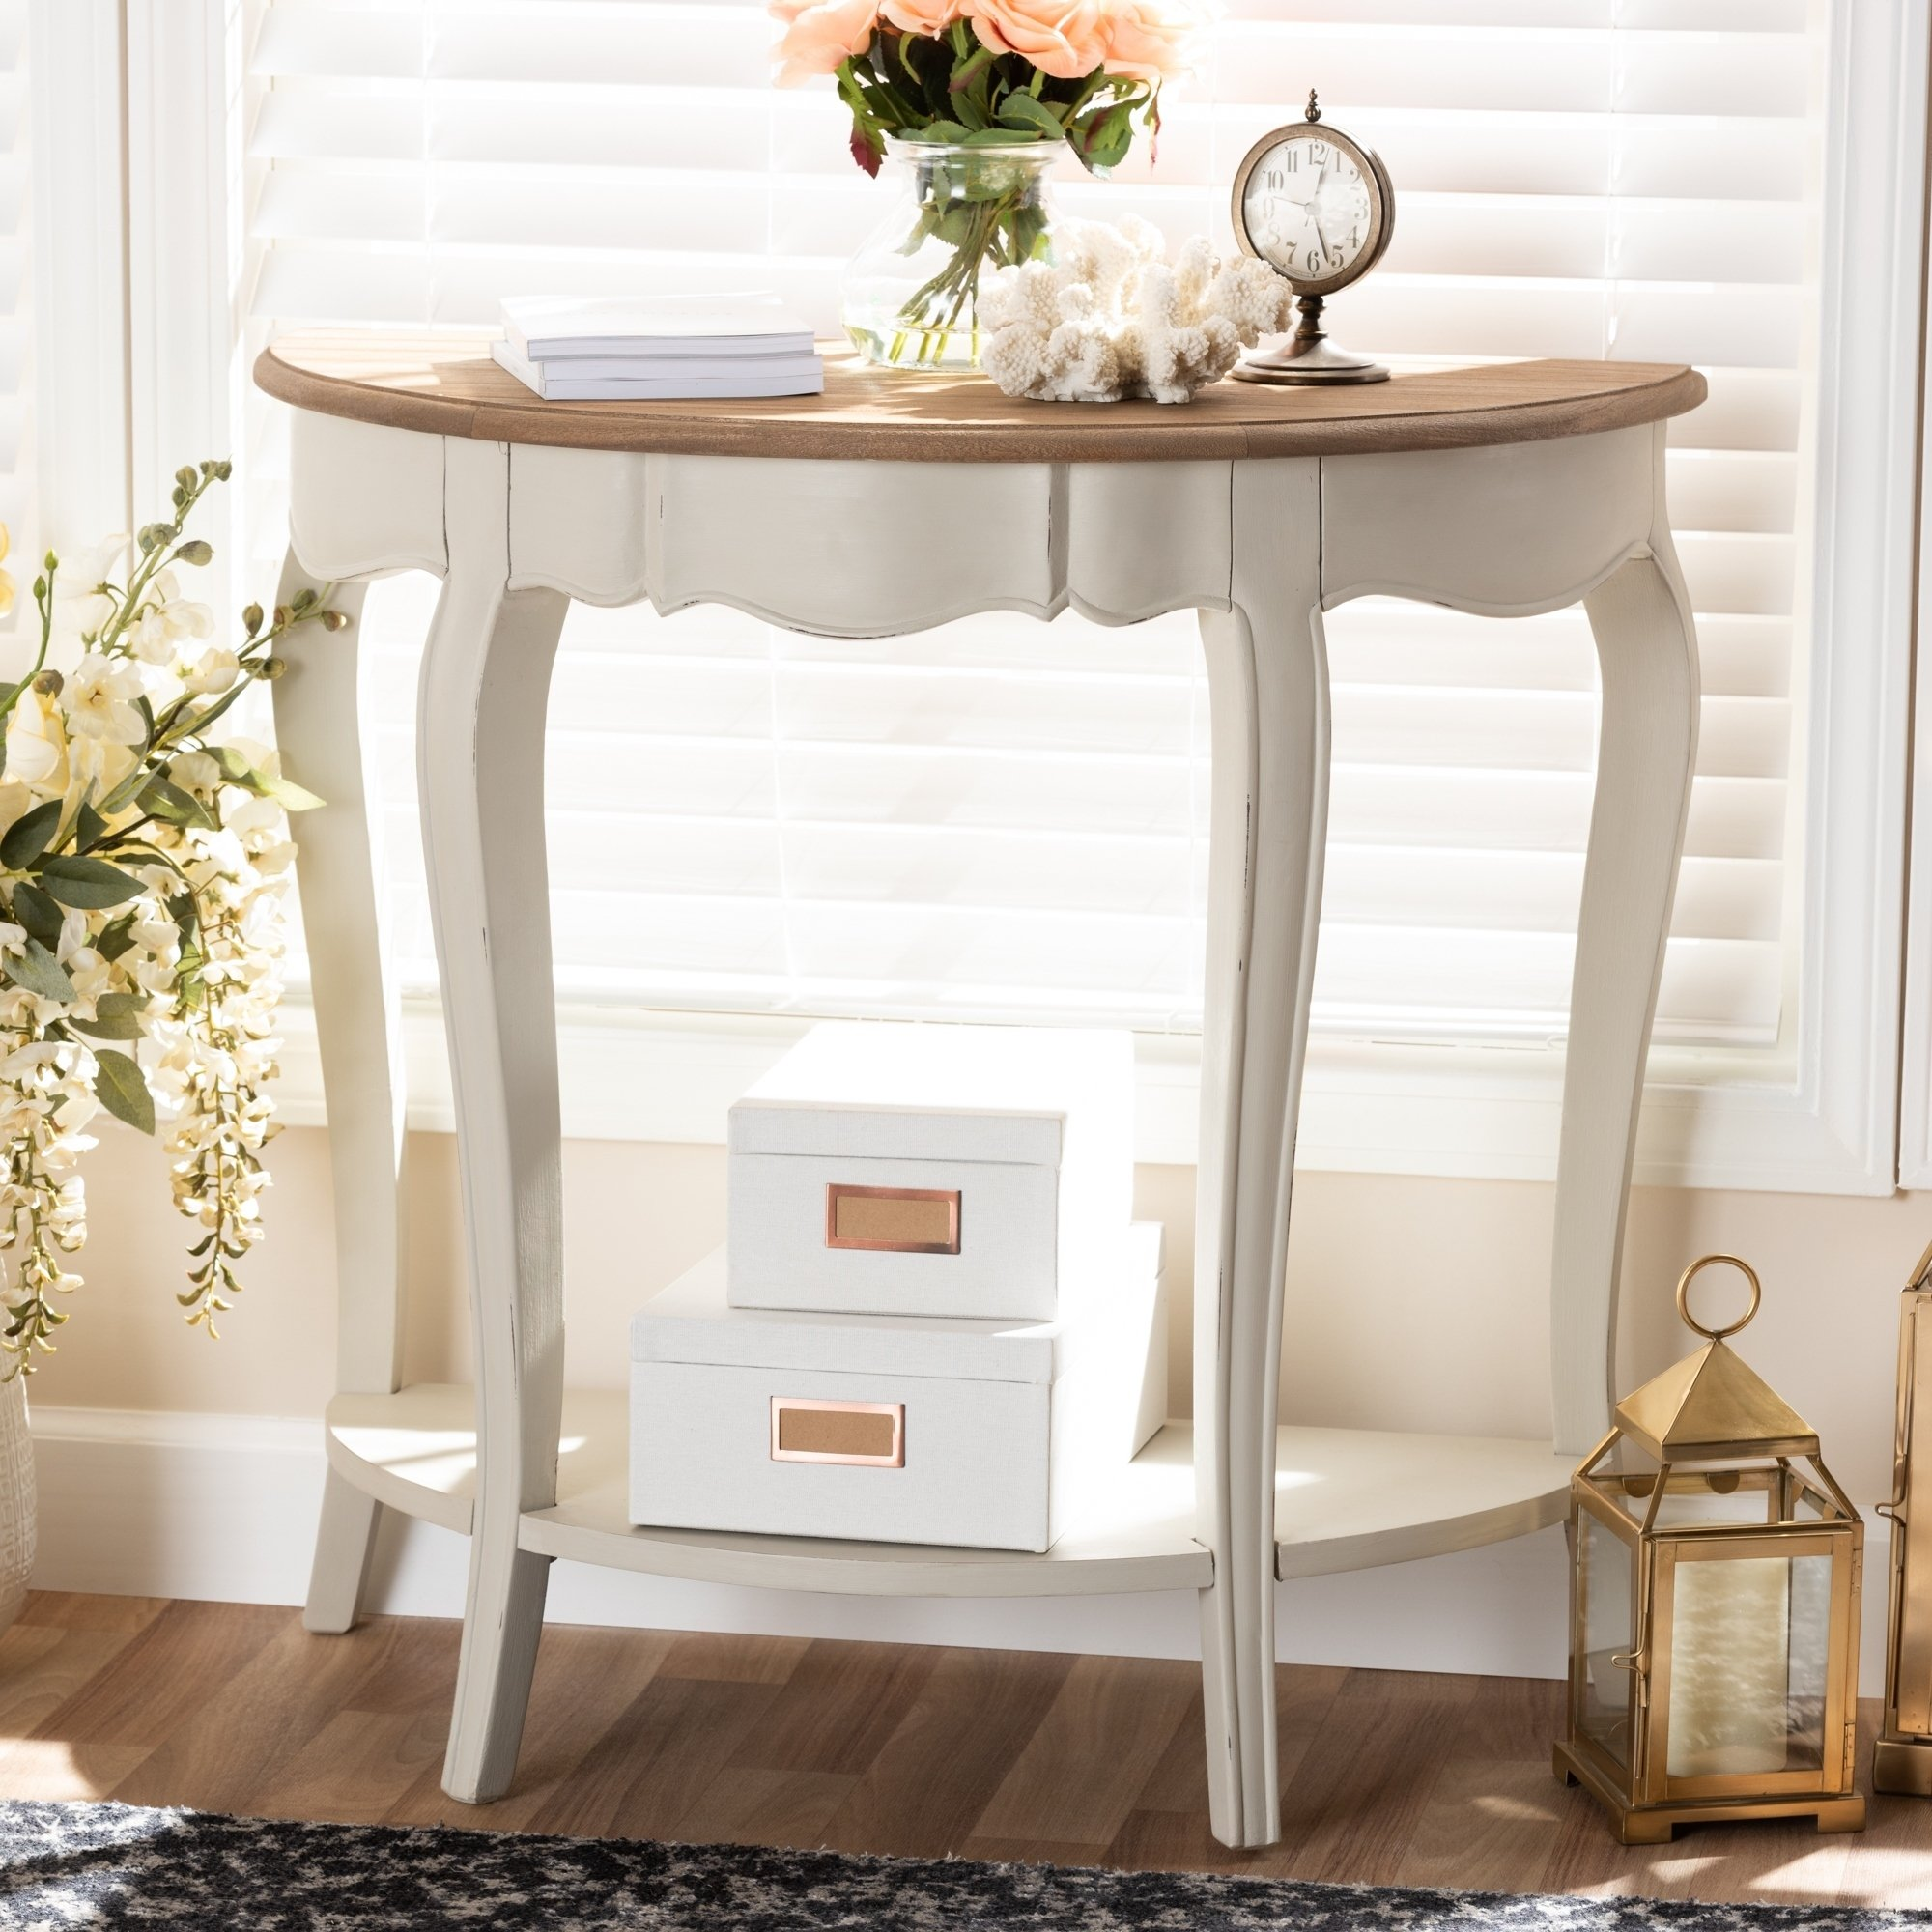 39+ Country cottage console table inspiration